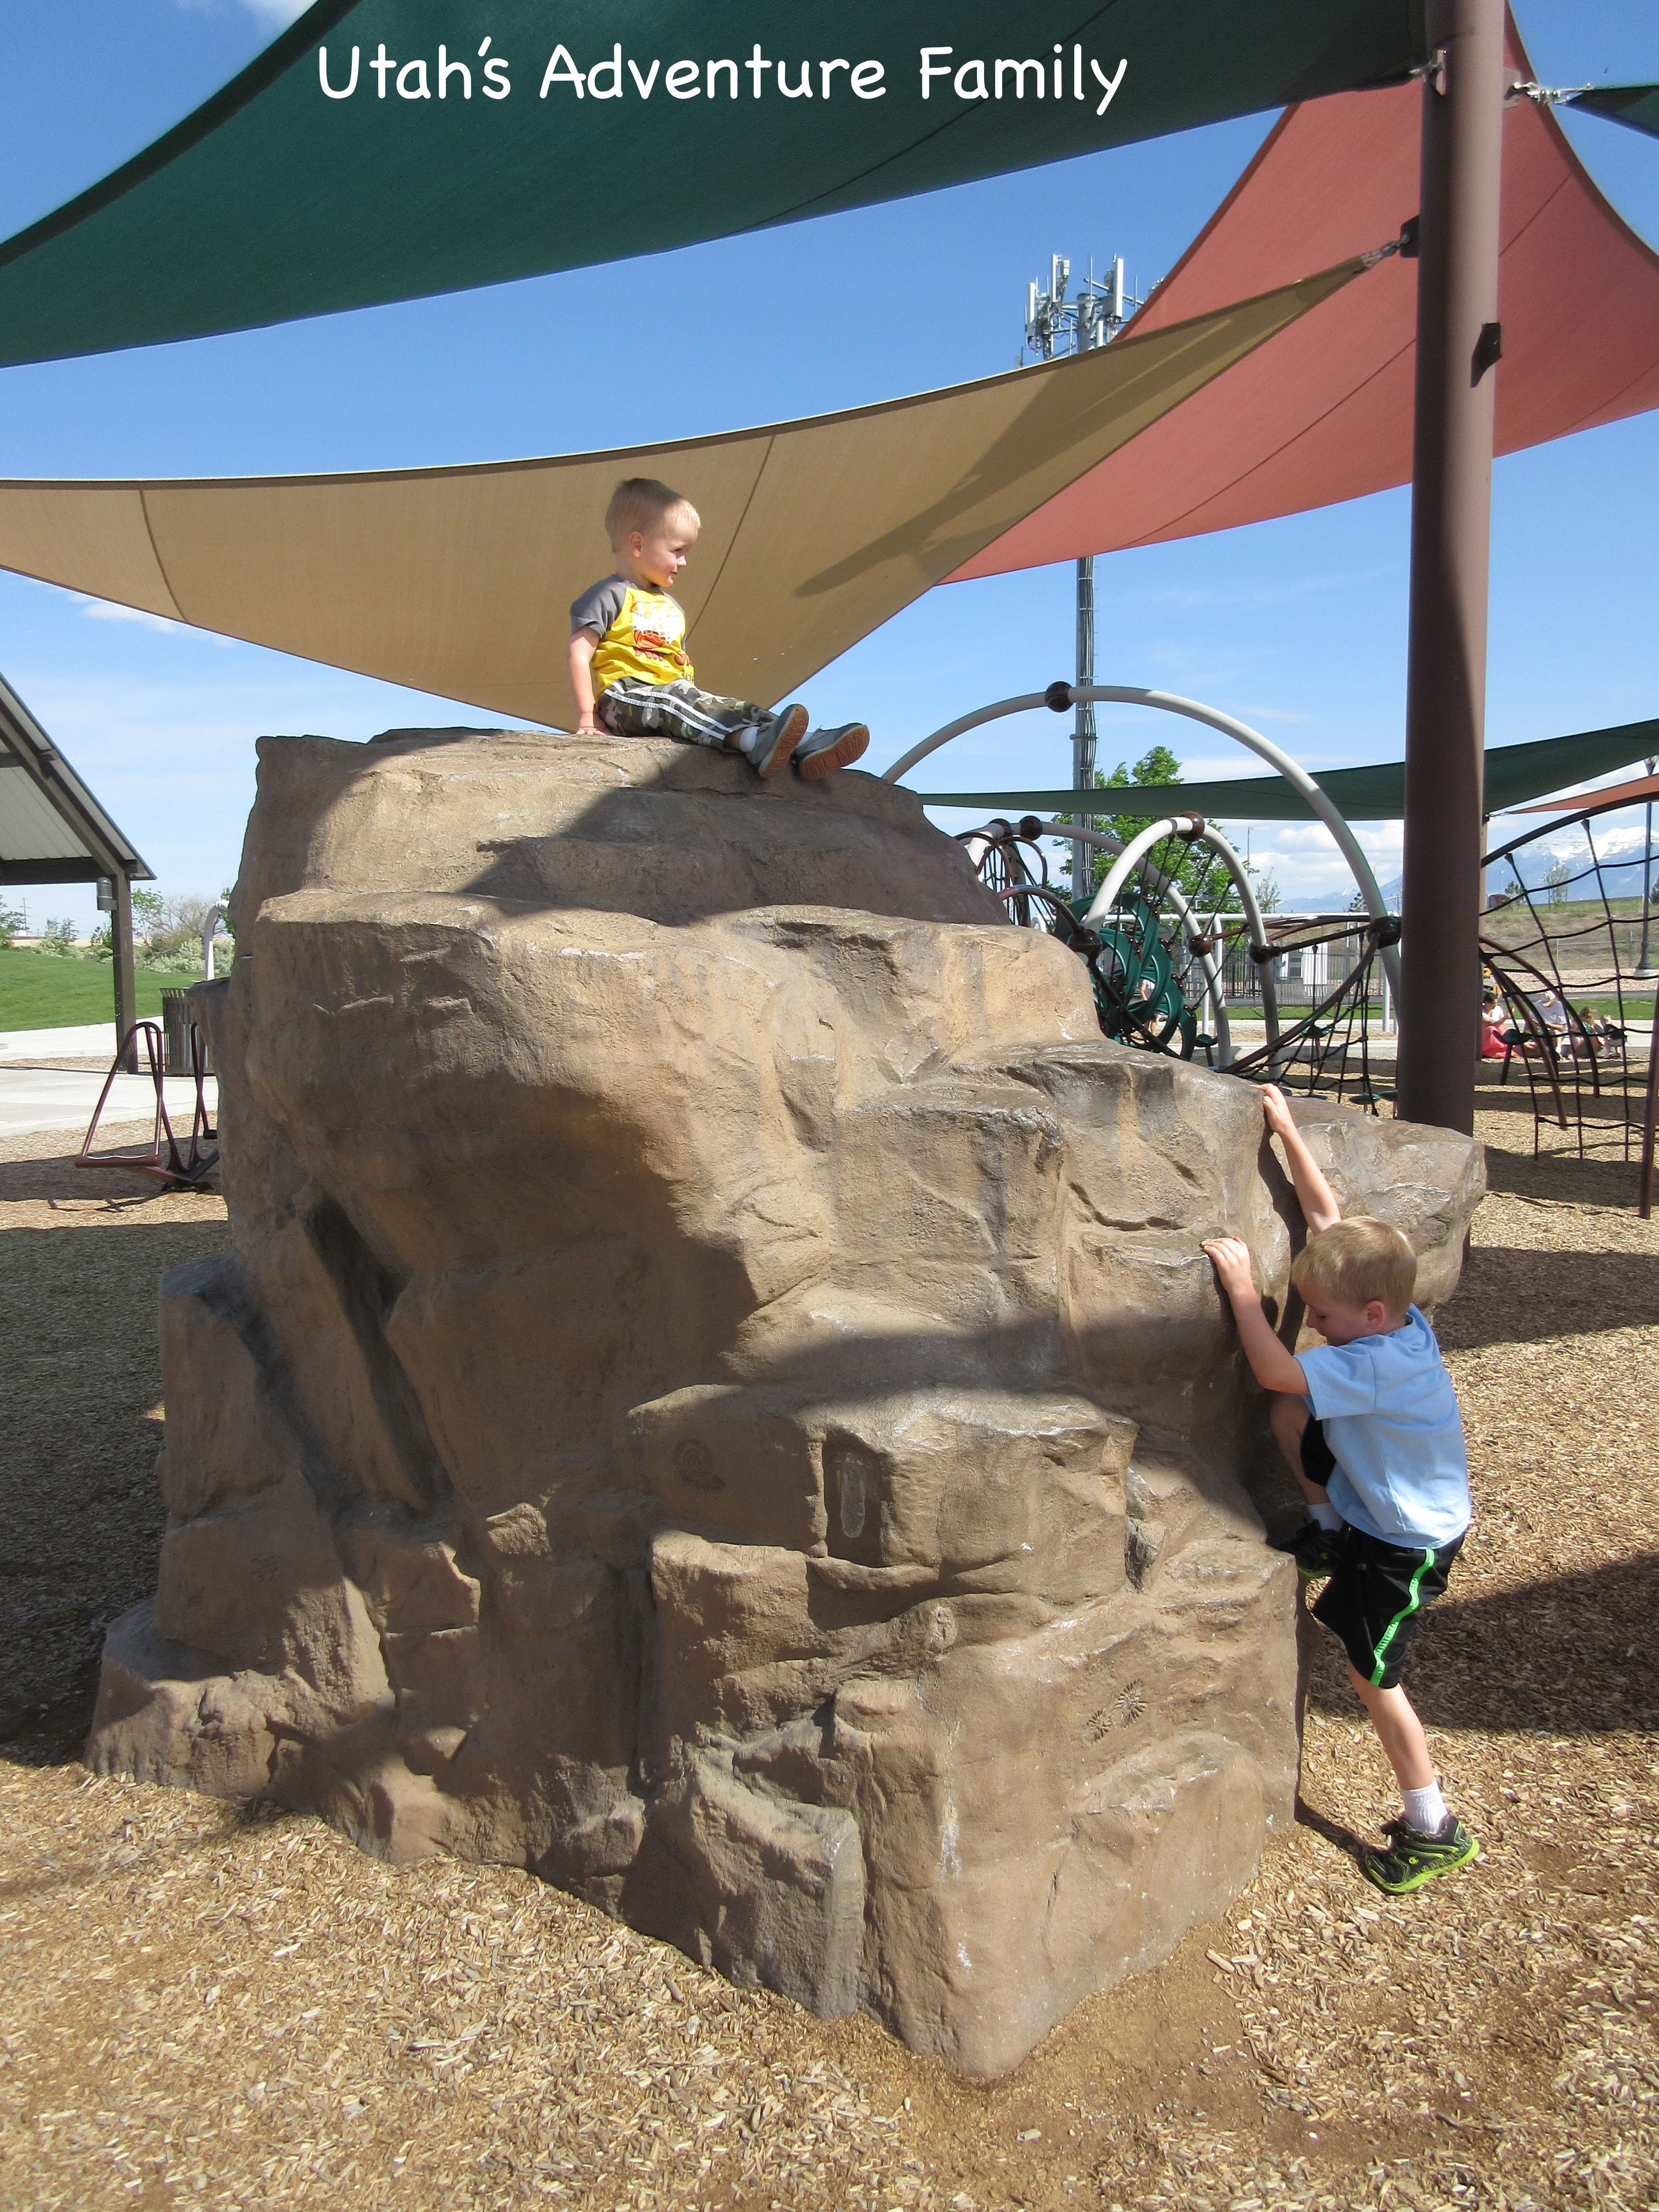 North Park In Spanish Fork Utah S Adventure Family